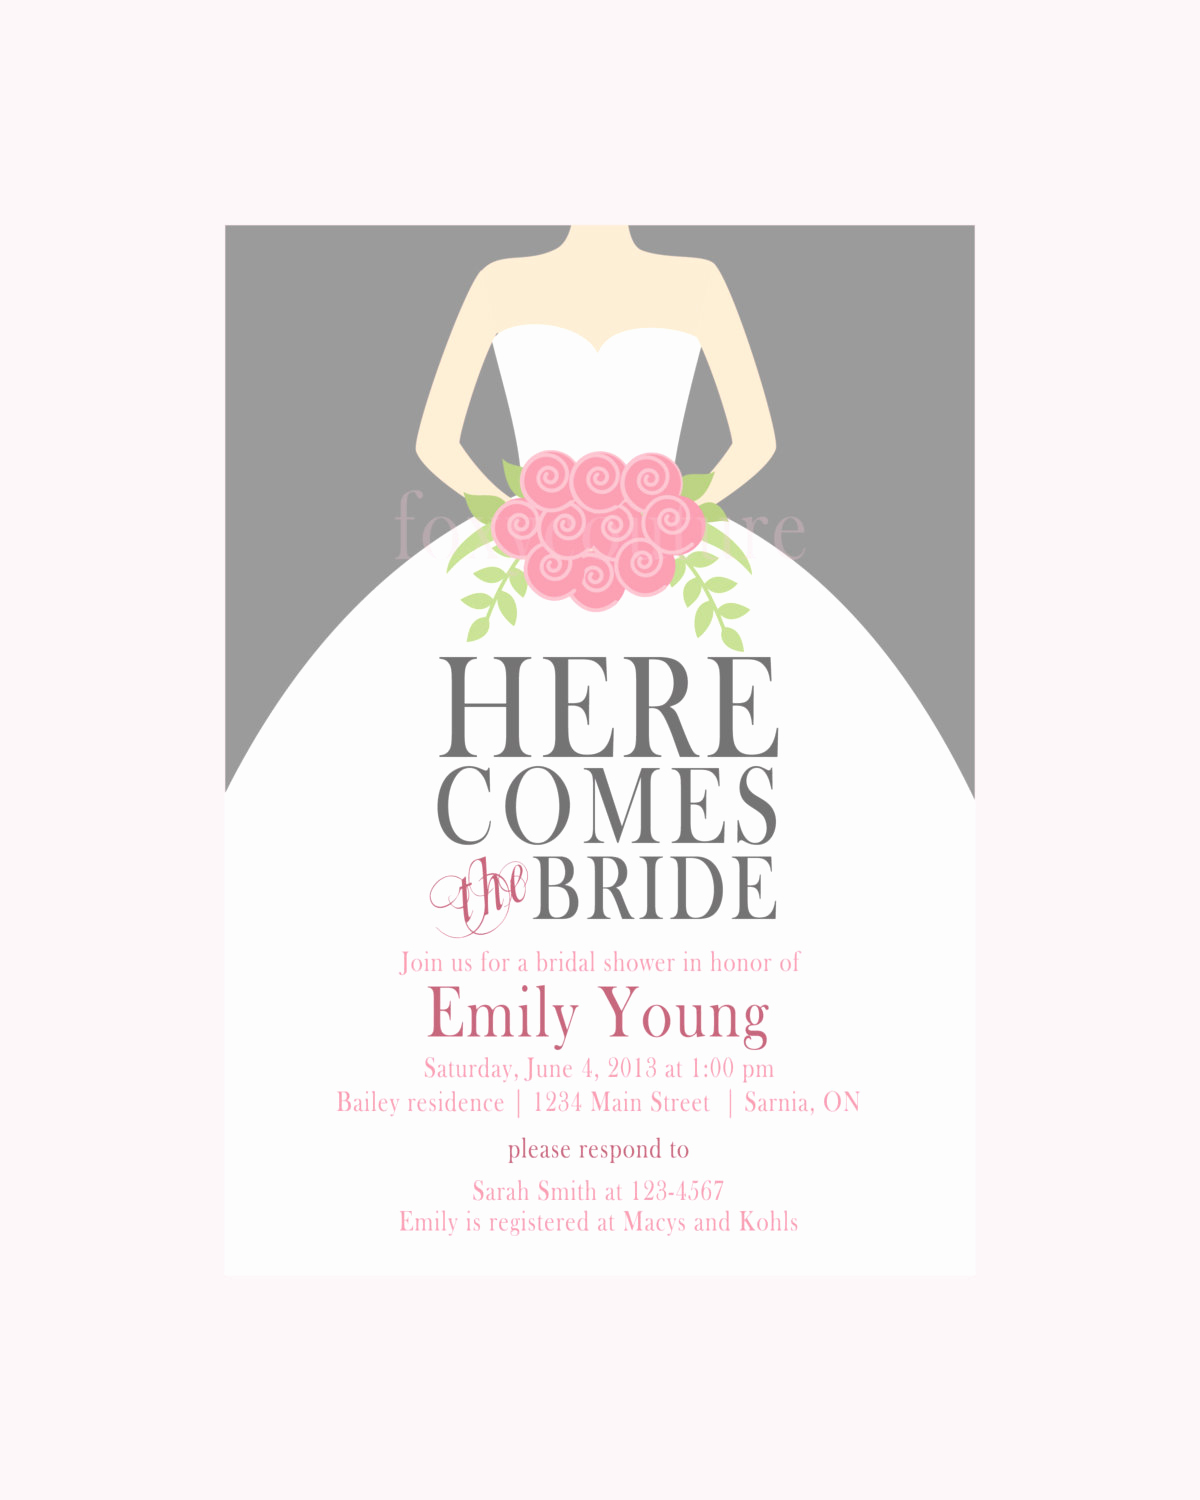 Wedding Shower Invitation Template Luxury Bridal Shower Invitation Templates